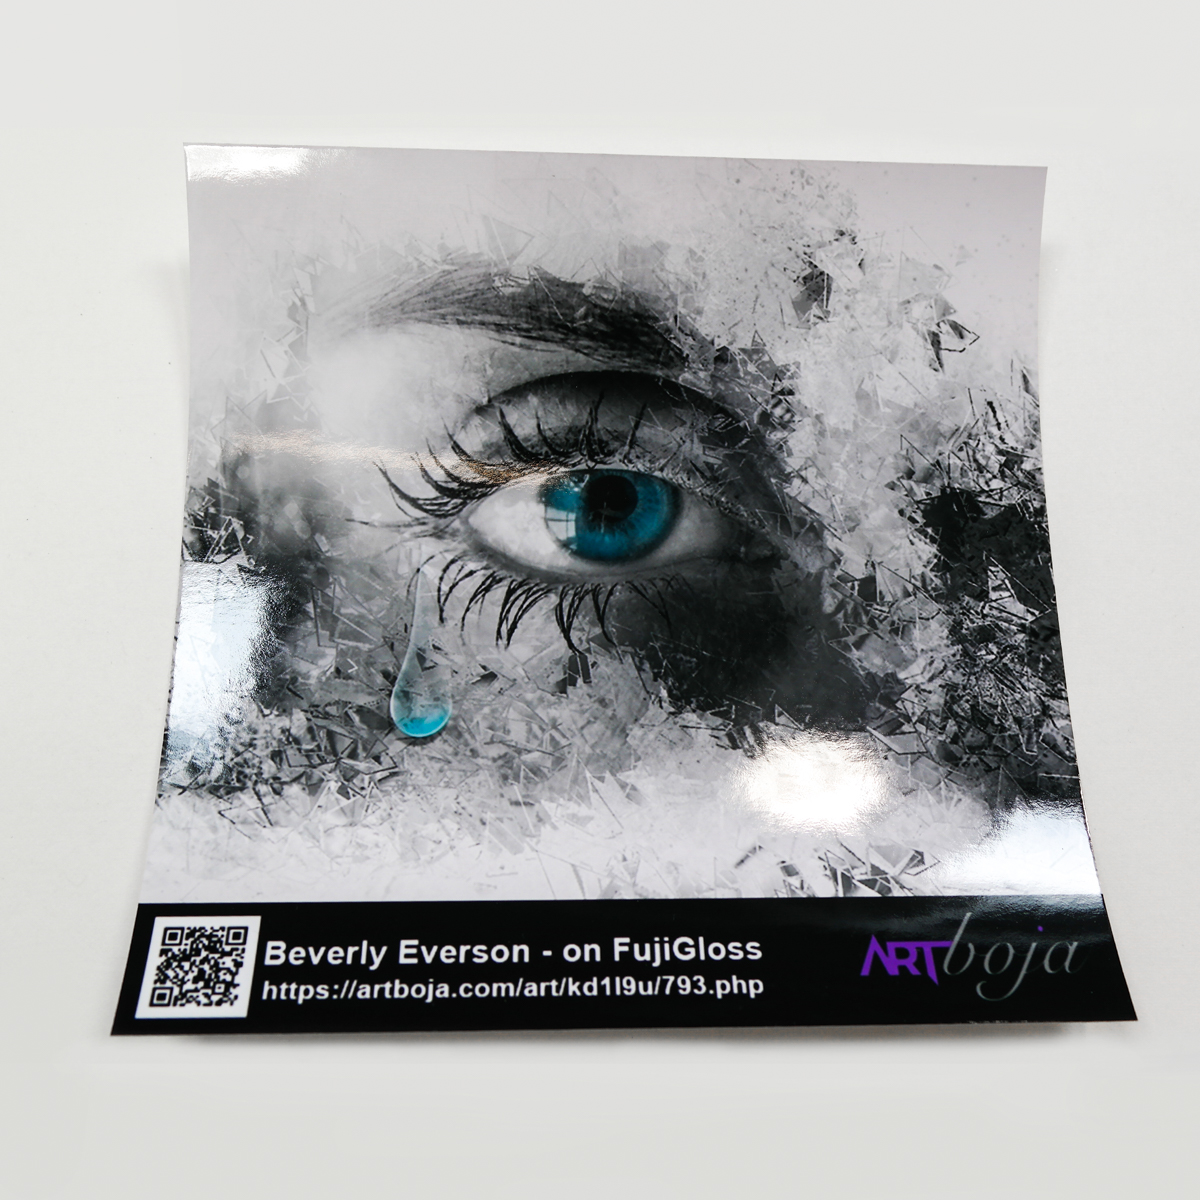 Photo paper glossy printed by ArtisanHD